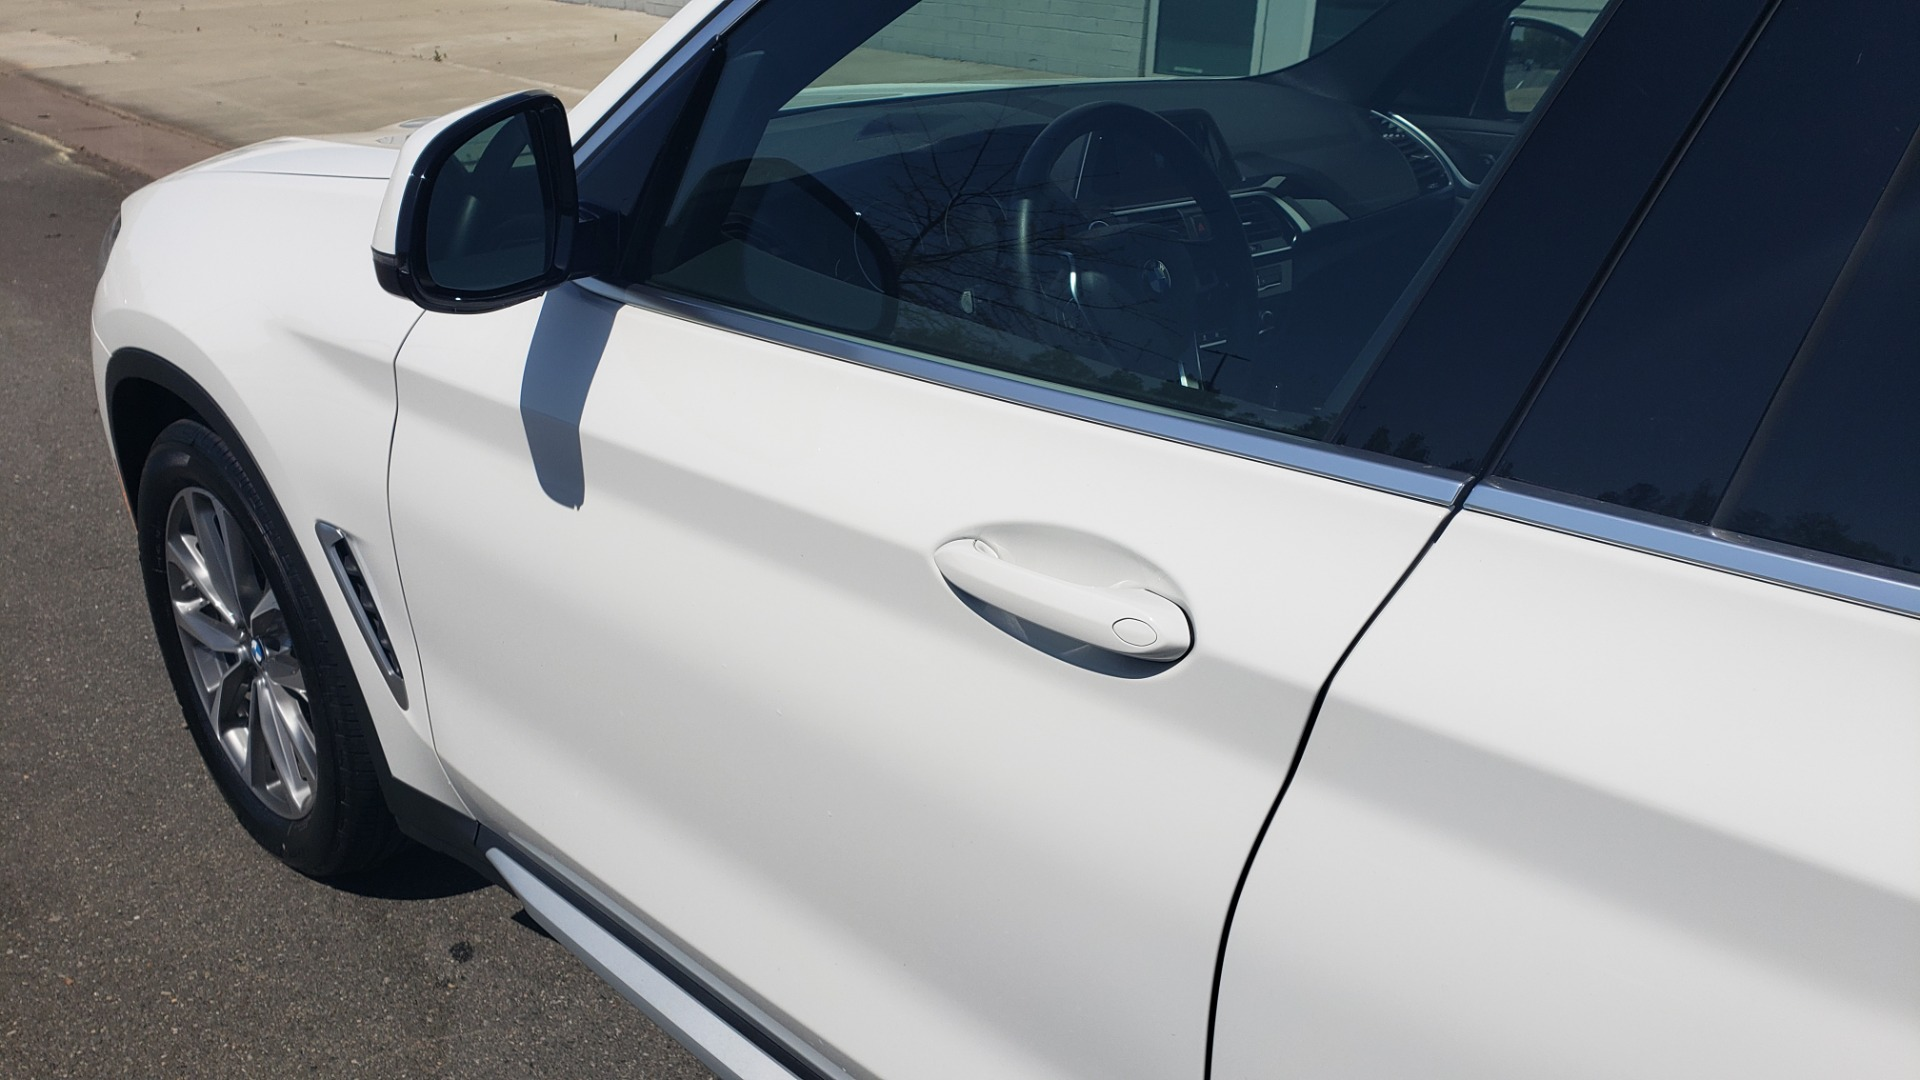 Used 2018 BMW X3 XDRIVE30I / CONV PKG / PANO-ROOF / HTD STS / REARVIEW for sale $33,995 at Formula Imports in Charlotte NC 28227 9